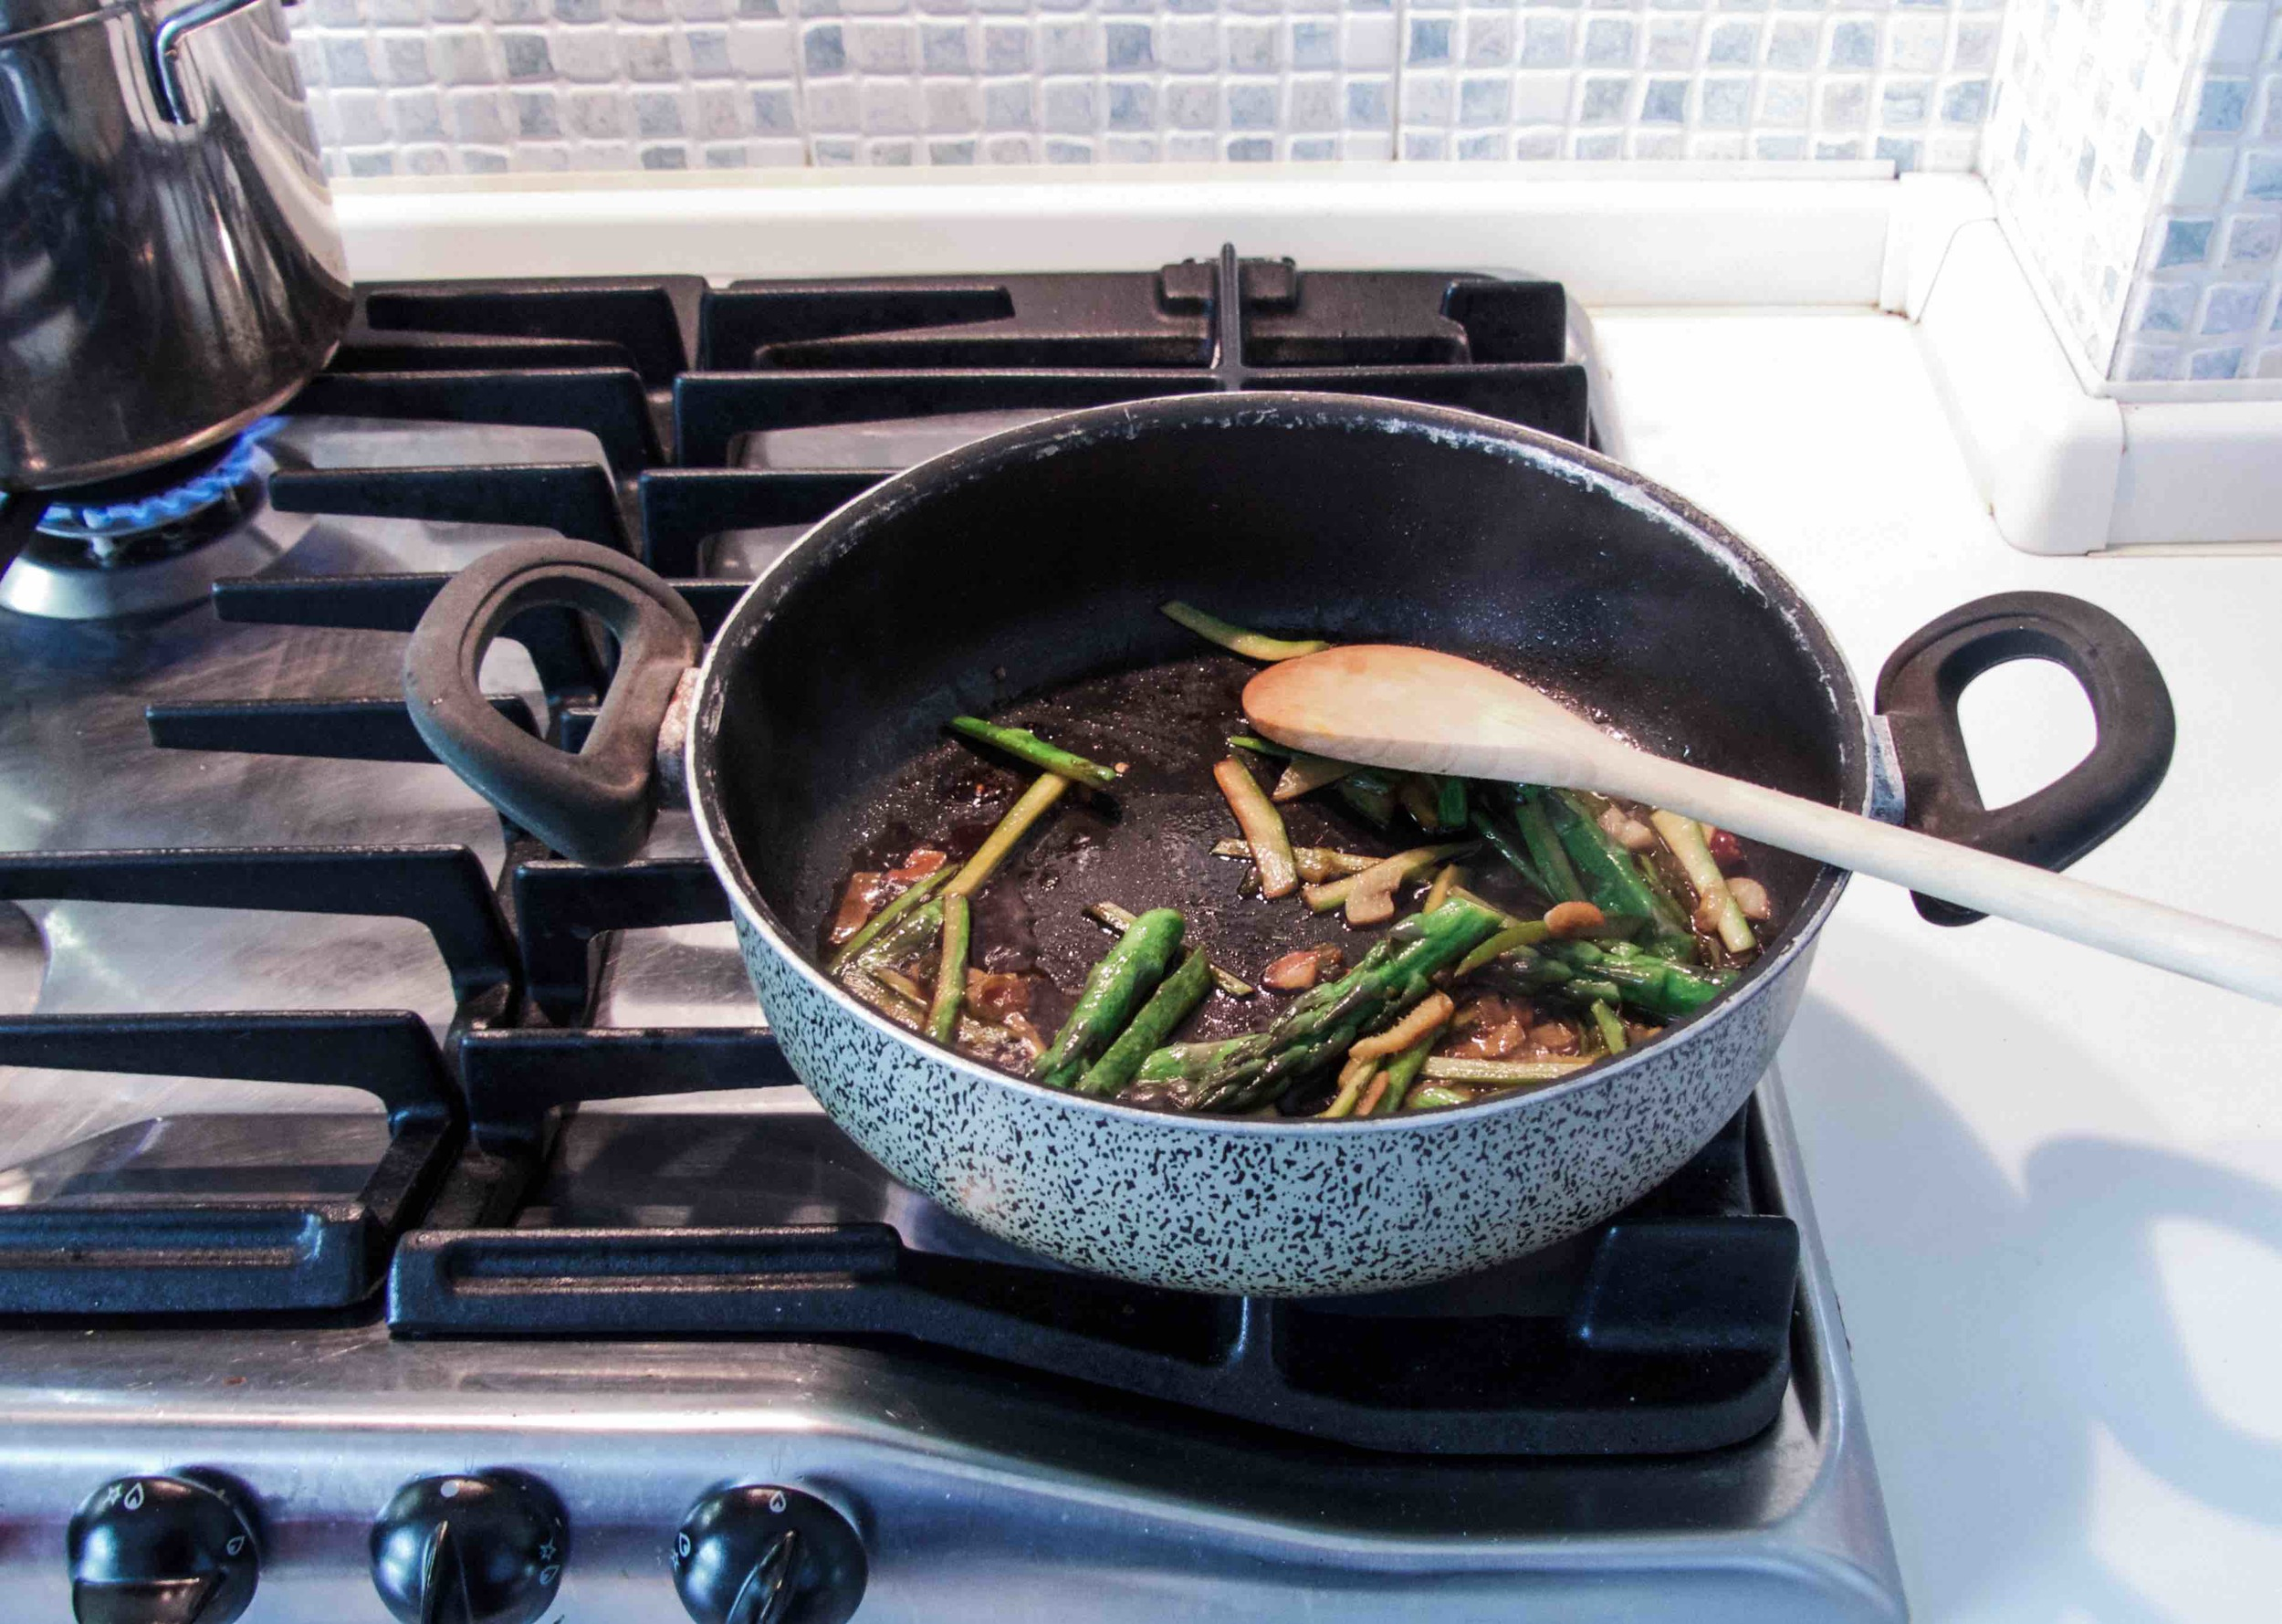 Instructions:   1) Cook soba according to its packaging label.  After soba is cooked, rinse with cold water and drain well.  Set aside.  2) Preheat a saucepan with 2-3 tbsp oil on medium-low heat, cook chopped garlic, spring onion, chilli, and ginger 1-2 minutes.    3) Stir in asparagus and mirin.  Cook 1-2 minutes.    4) Add water and soy sauce, put a lid on and let the vegetables cook 3-5 minutes.    5) Add soba and mix well.  Season if necessary.  Heat off.   6) Garnish with some sesame seeds, radish, chopped spring onion, and a drizzle of sesame oil before serving.